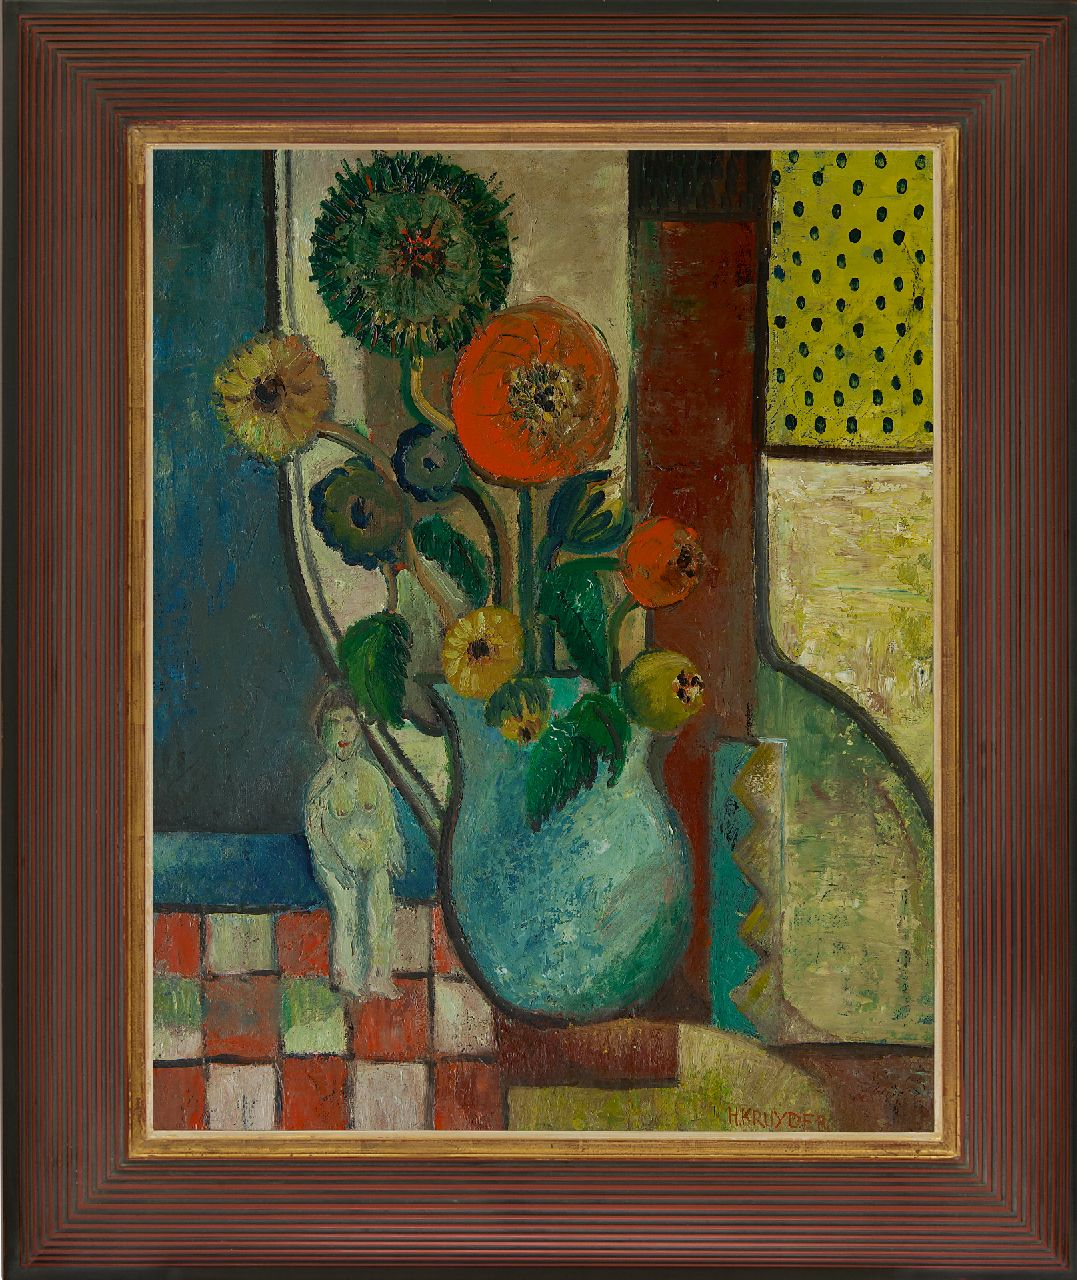 Kruyder H.J.  | 'Herman' Justus Kruyder, A still life with flowers, oil on canvas 69.0 x 54.8 cm, signed l.r. and painted ca. 1931